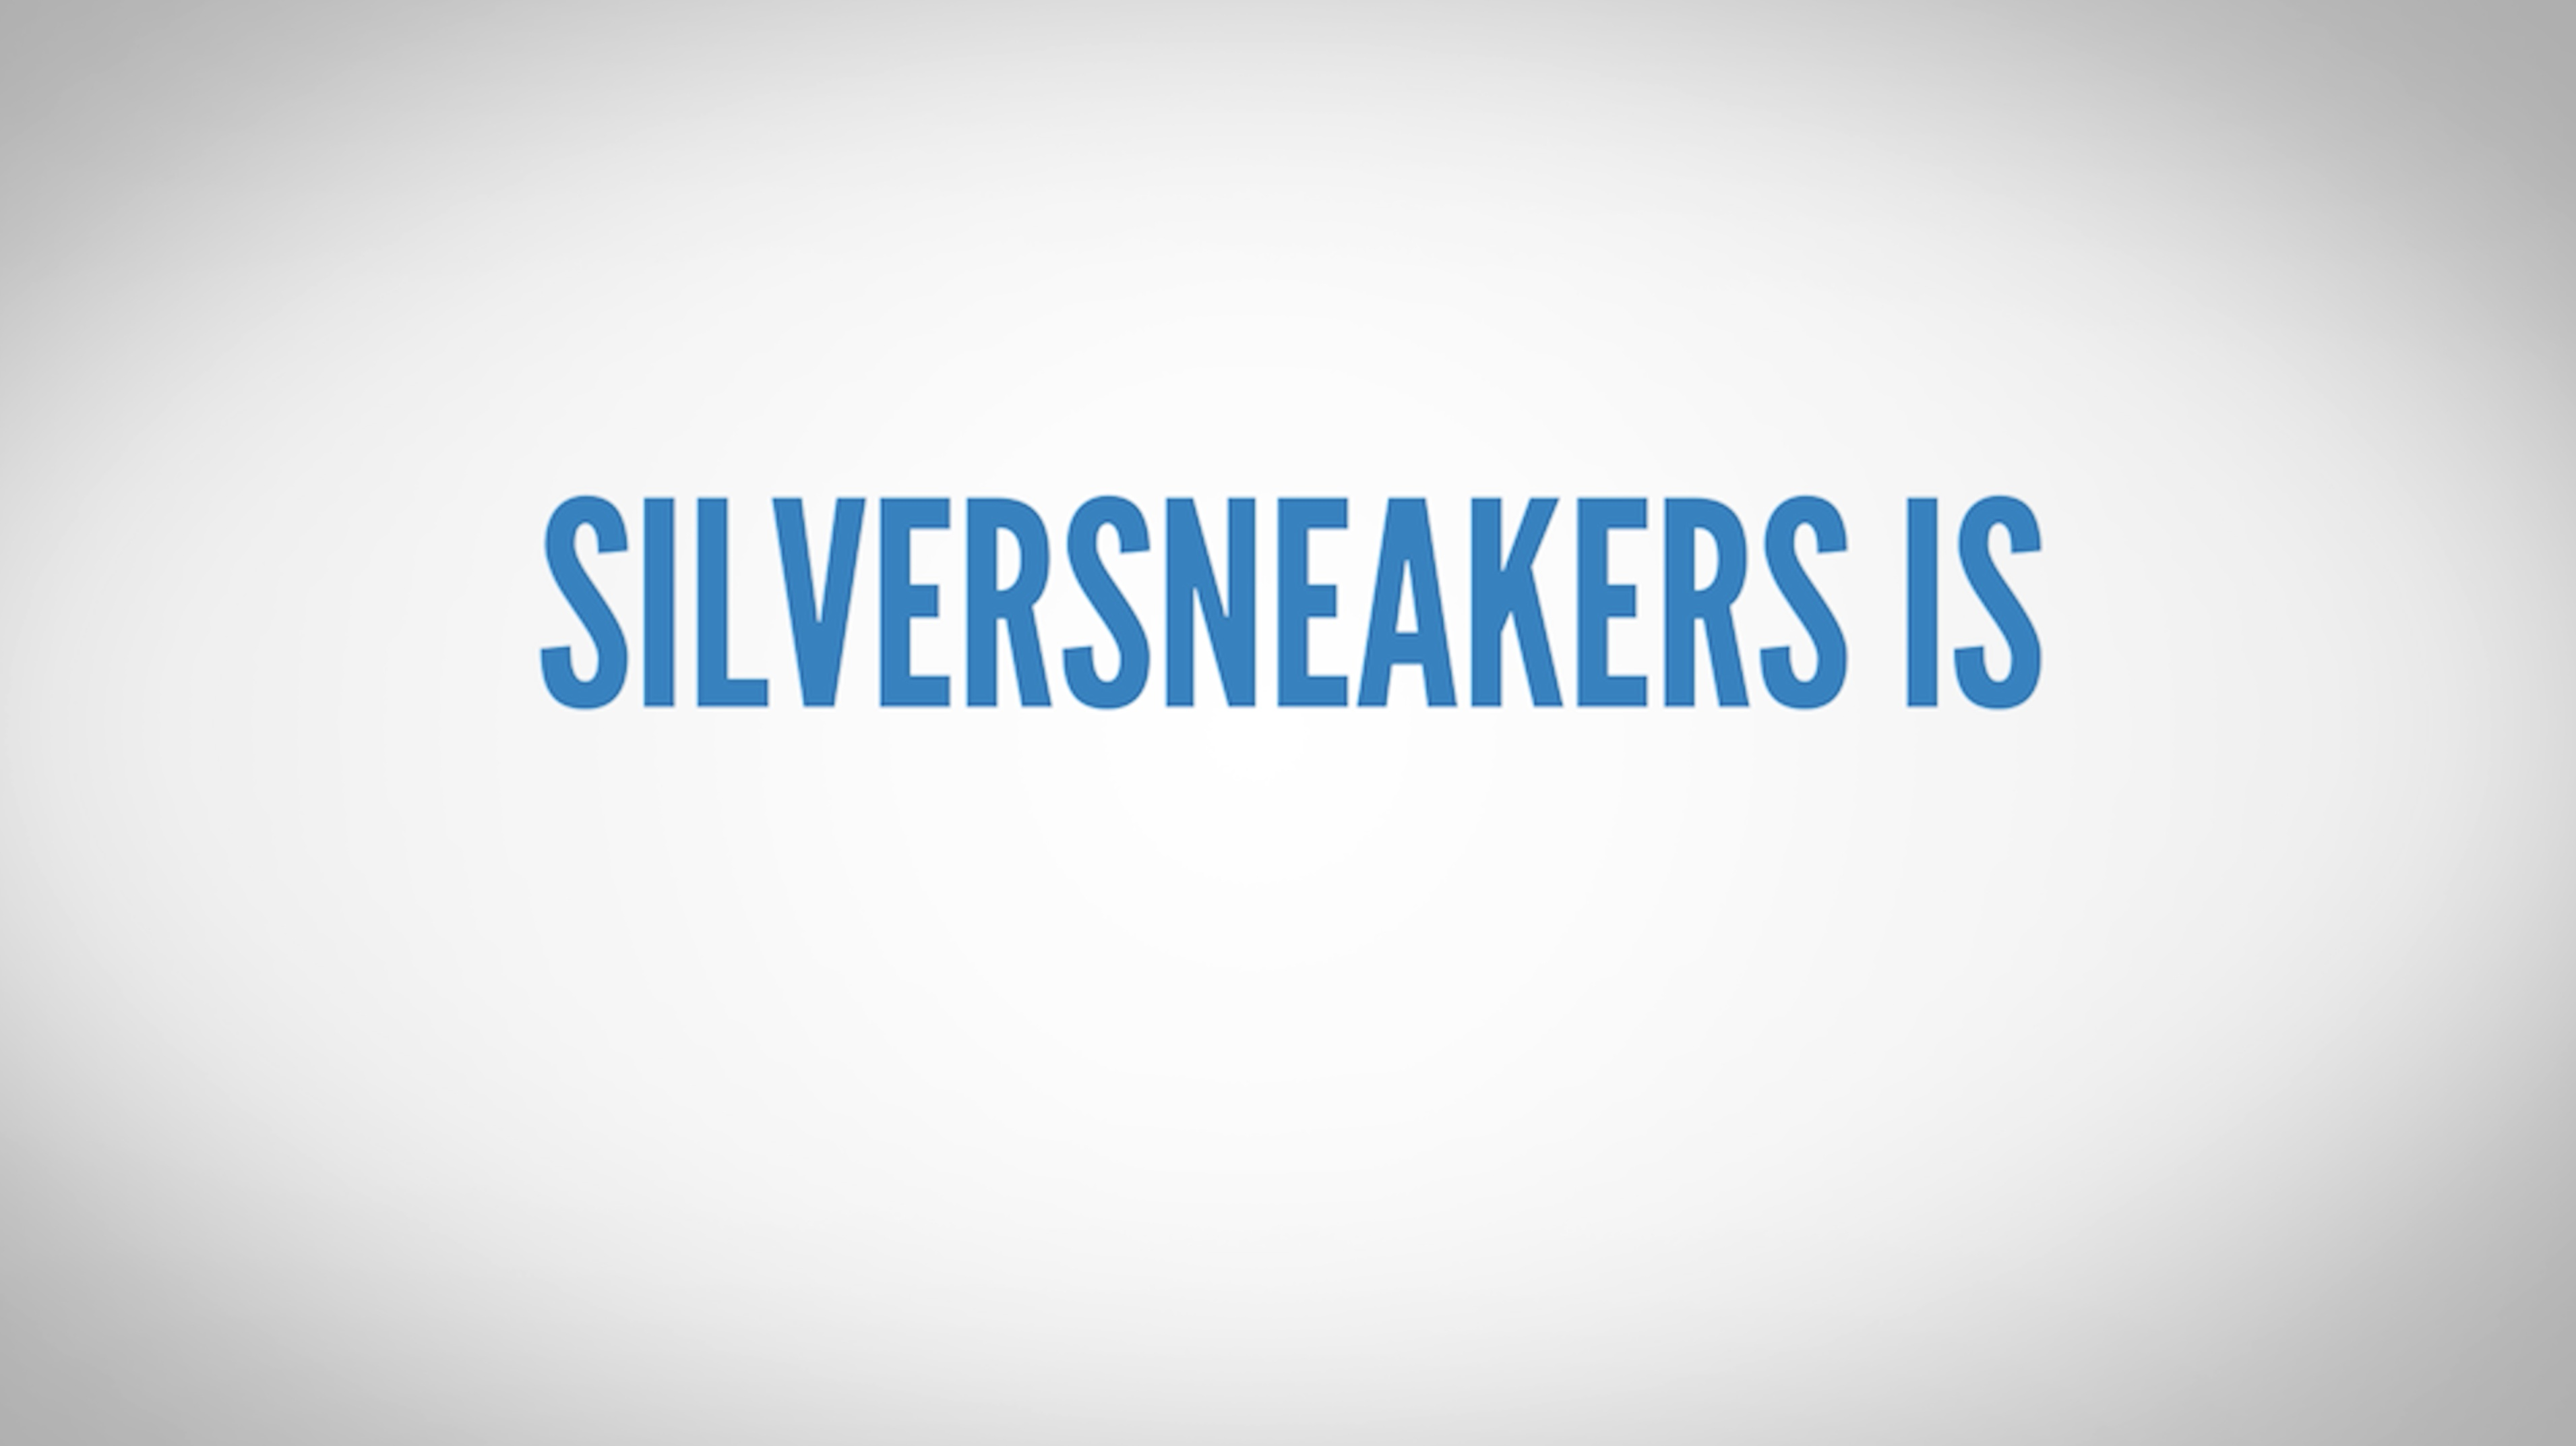 Silver sneakers tucson